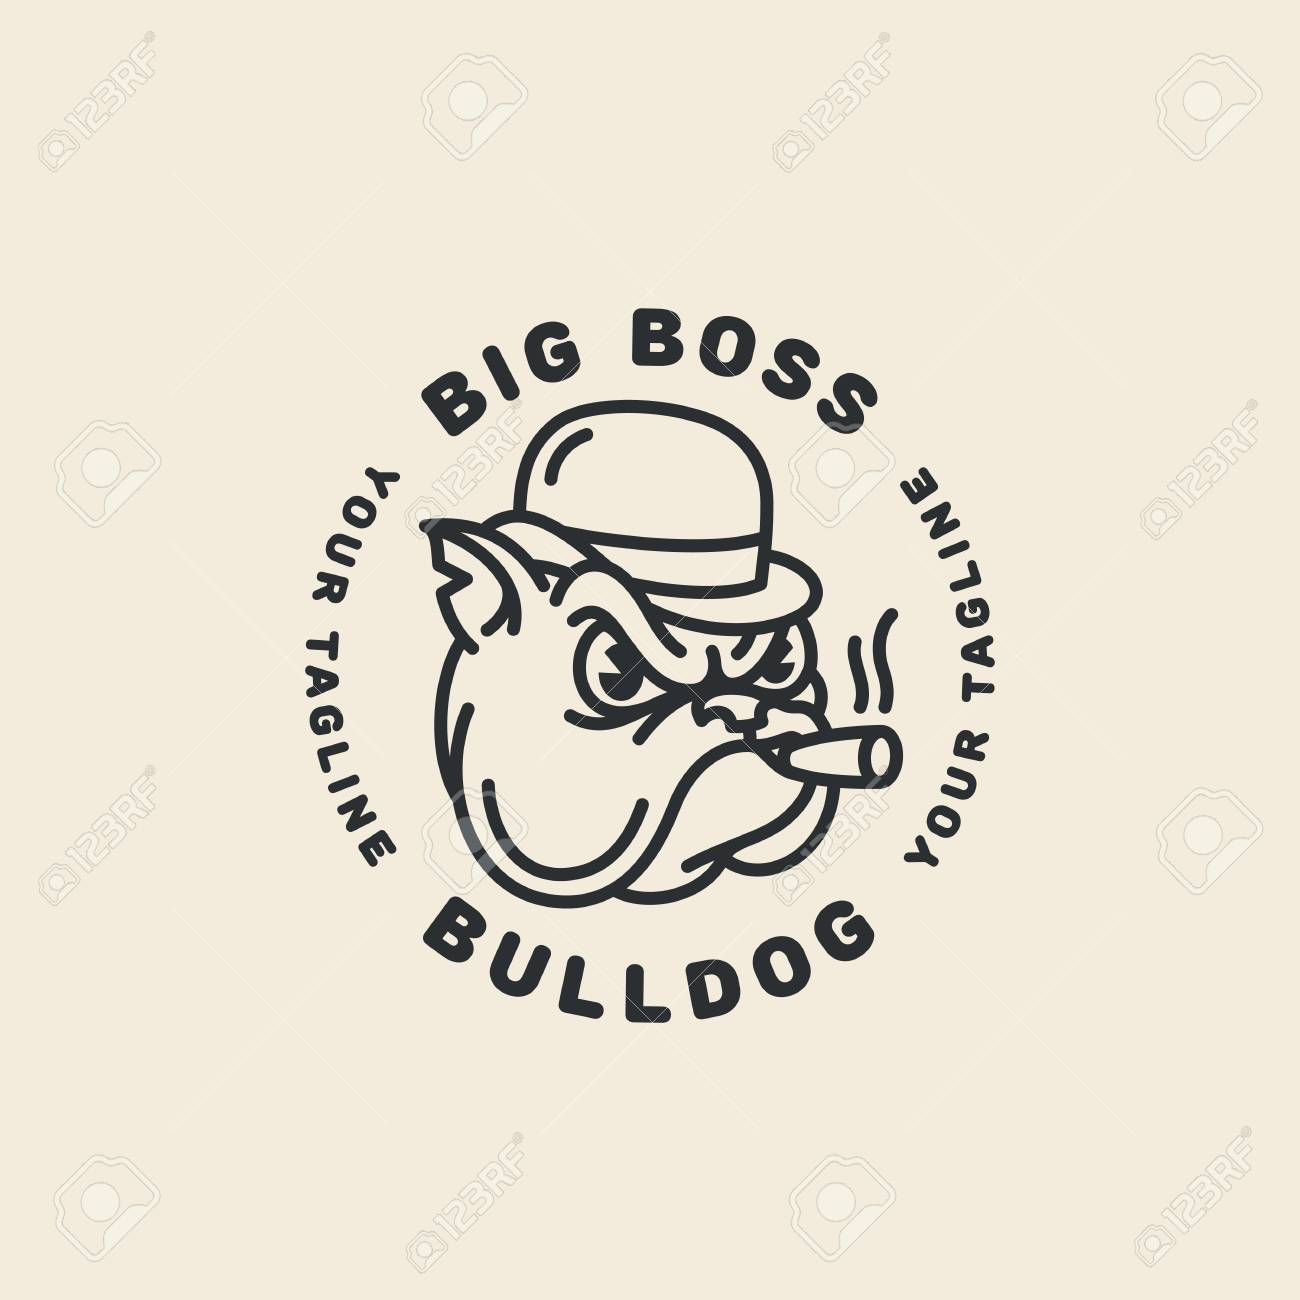 a circular template design in an outline style with a bulldog